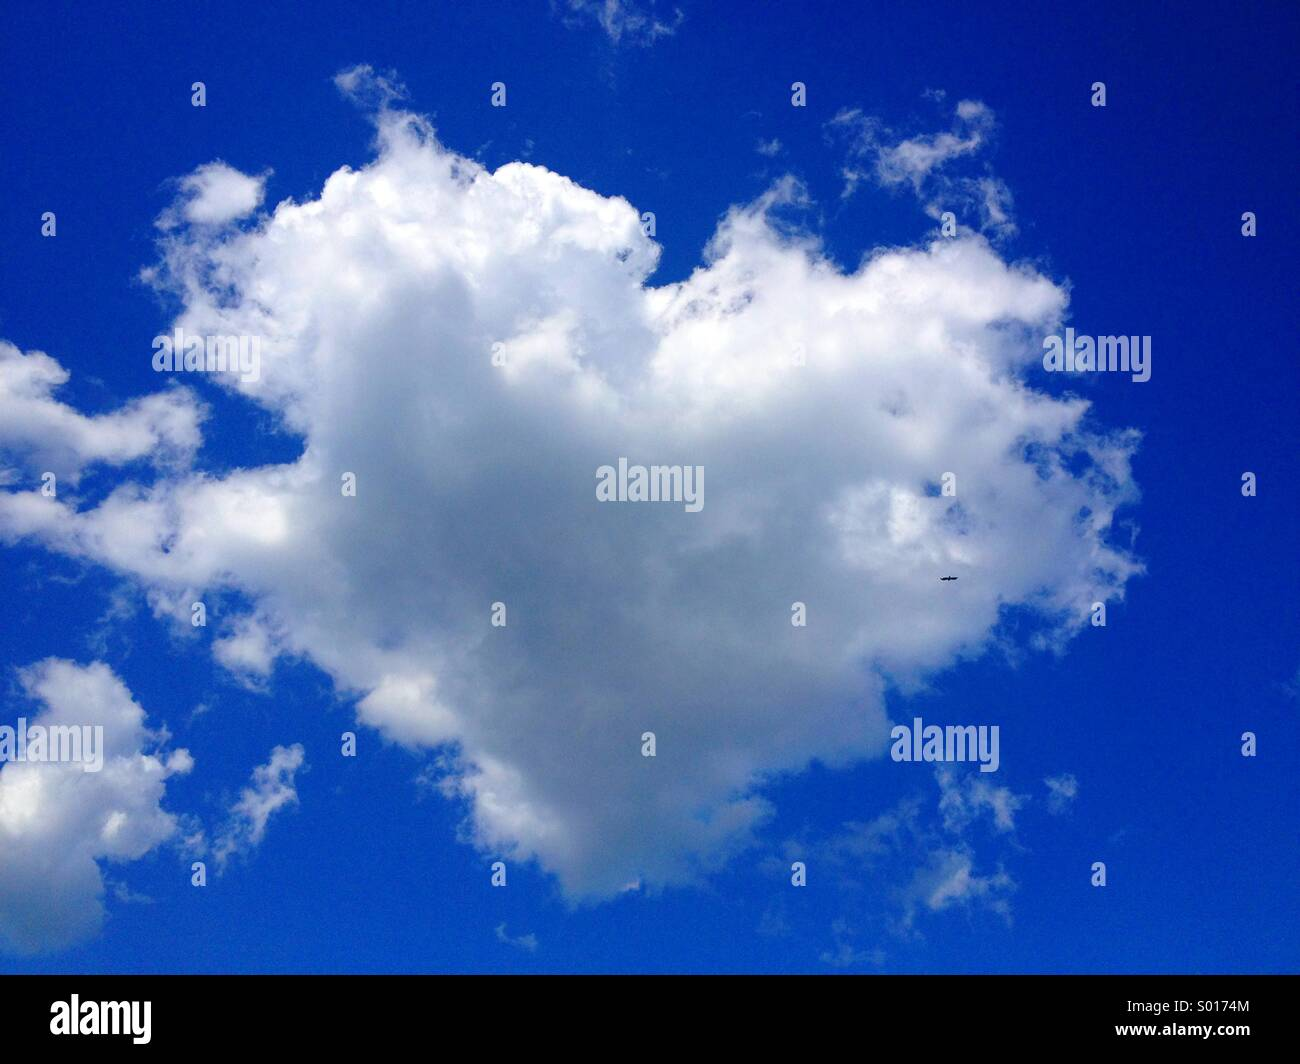 Love is in the air. - Stock Image